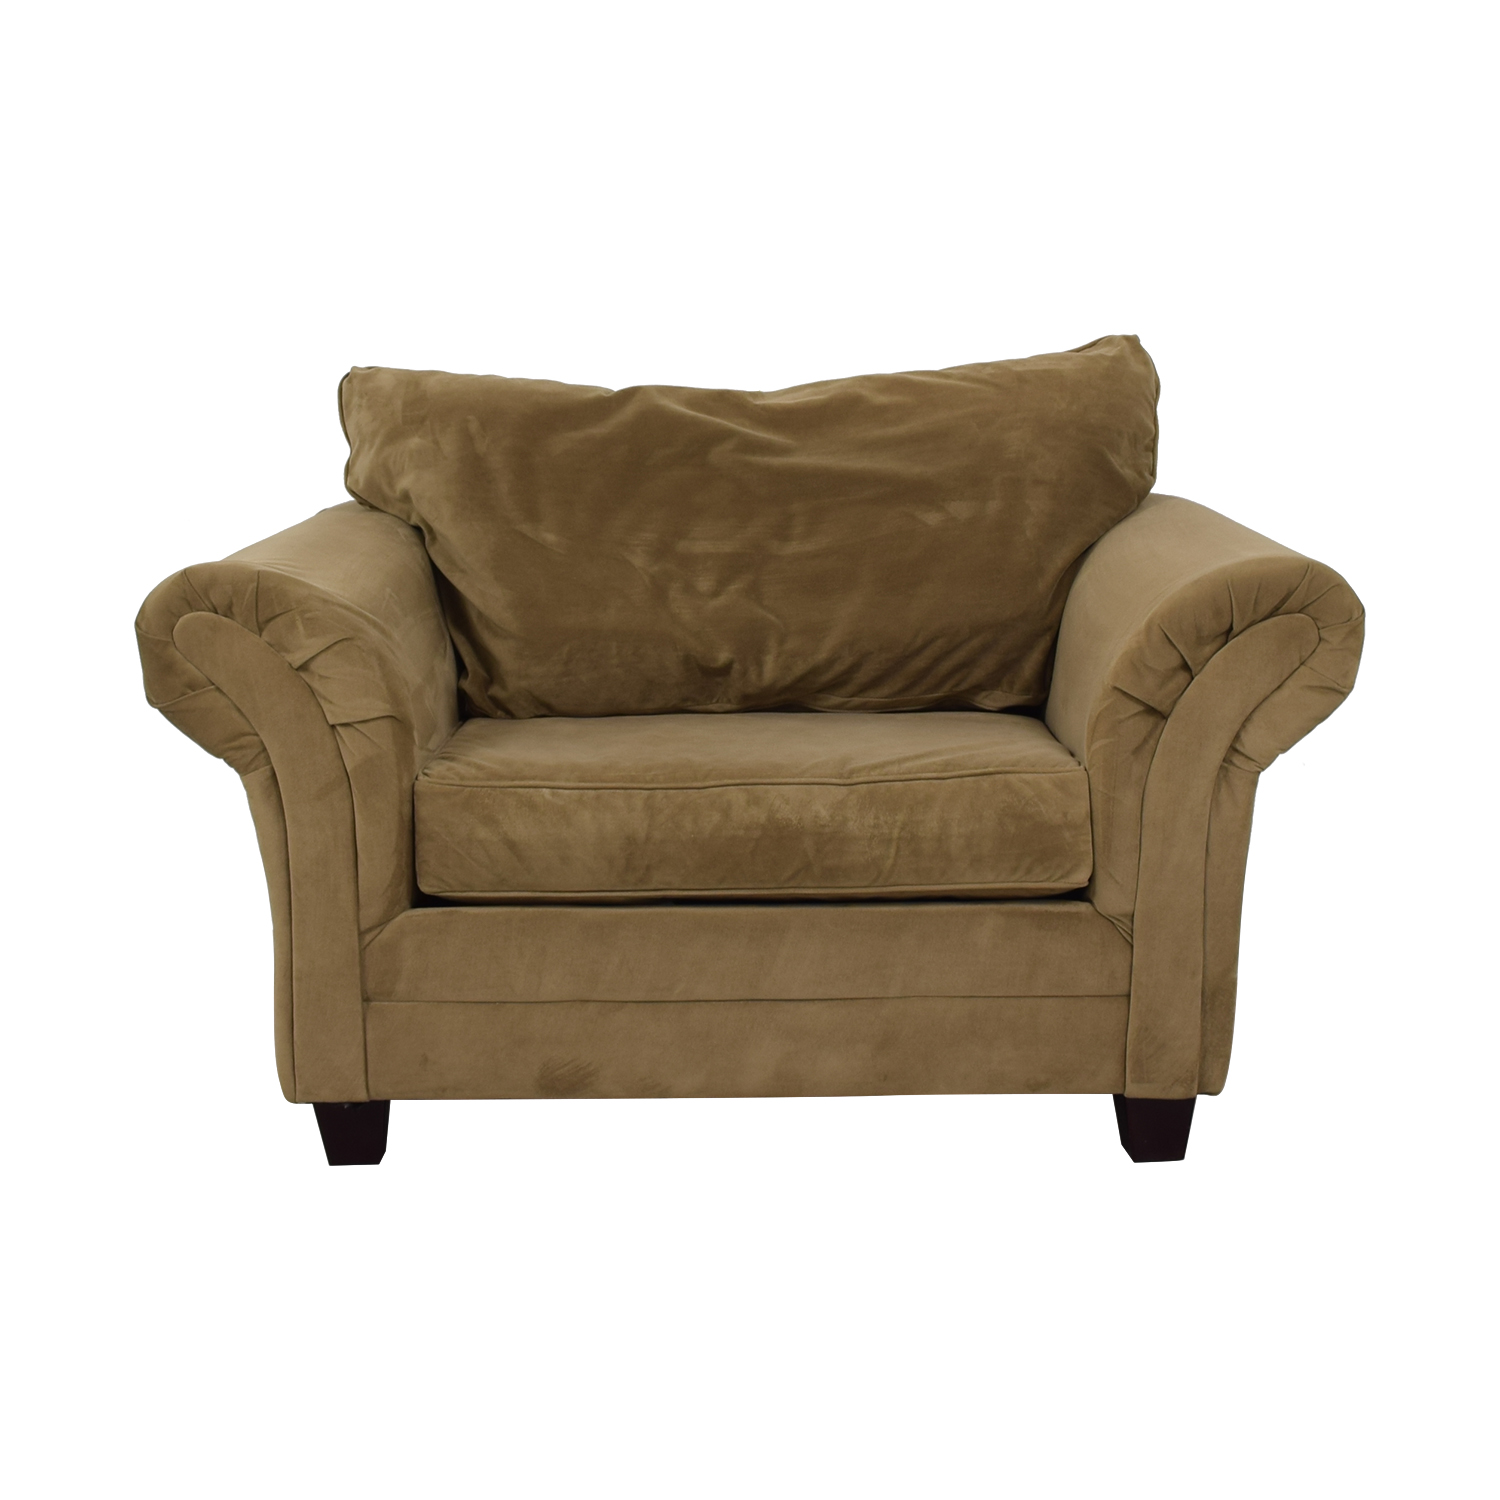 buy Bob's Discount Furniture Bella Tan Accent Chair Bob's Discount Furniture Chairs